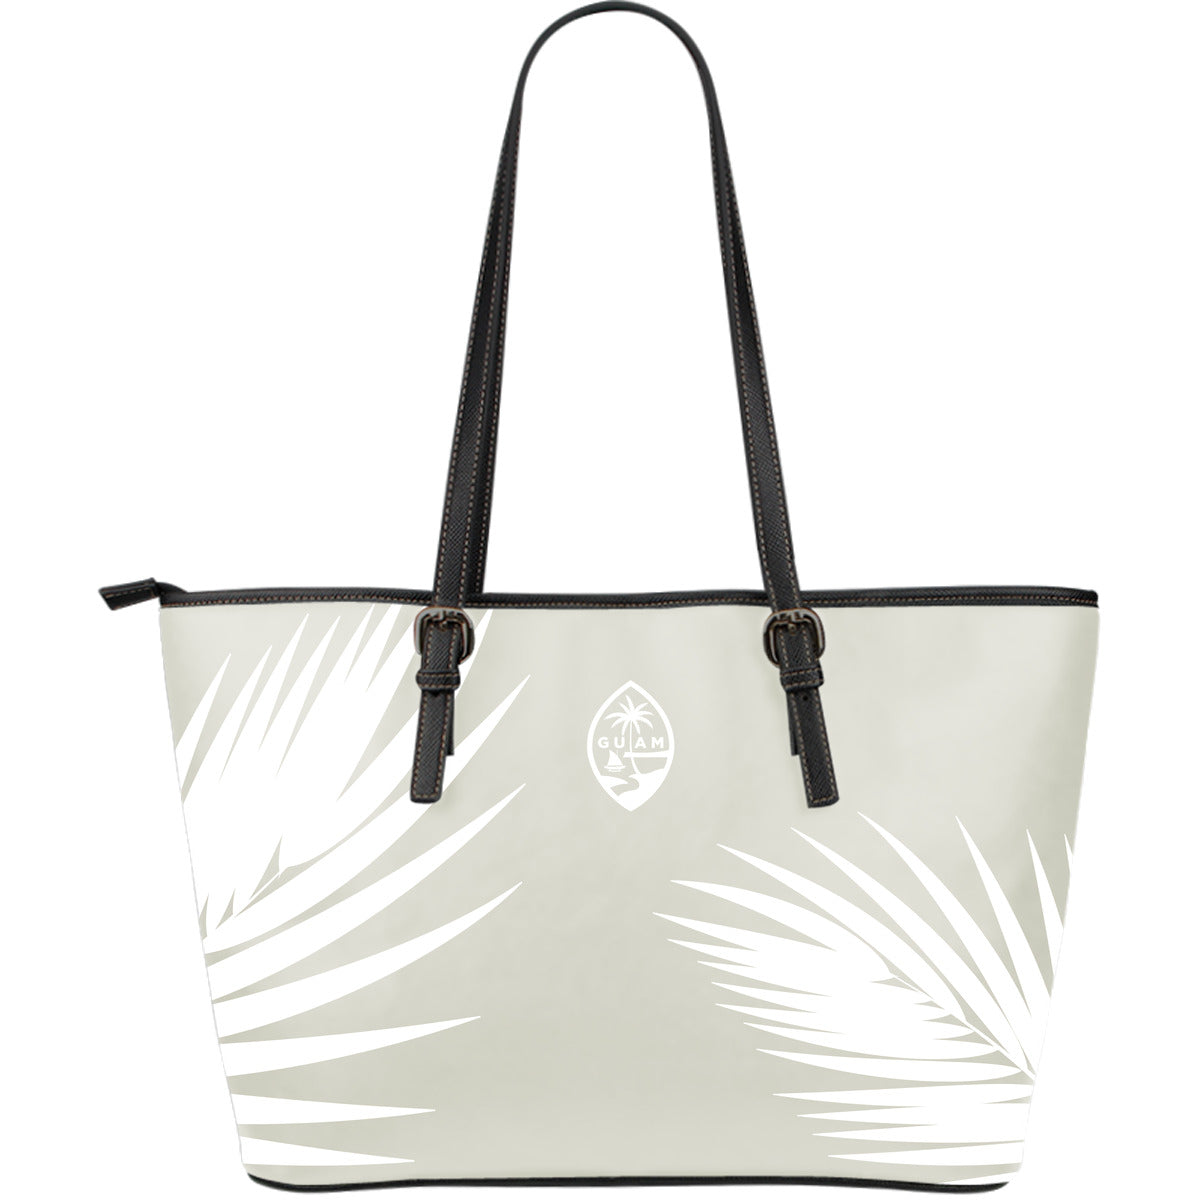 Guam Seal Classy Coconut Leaves Large Leather Tote Purse